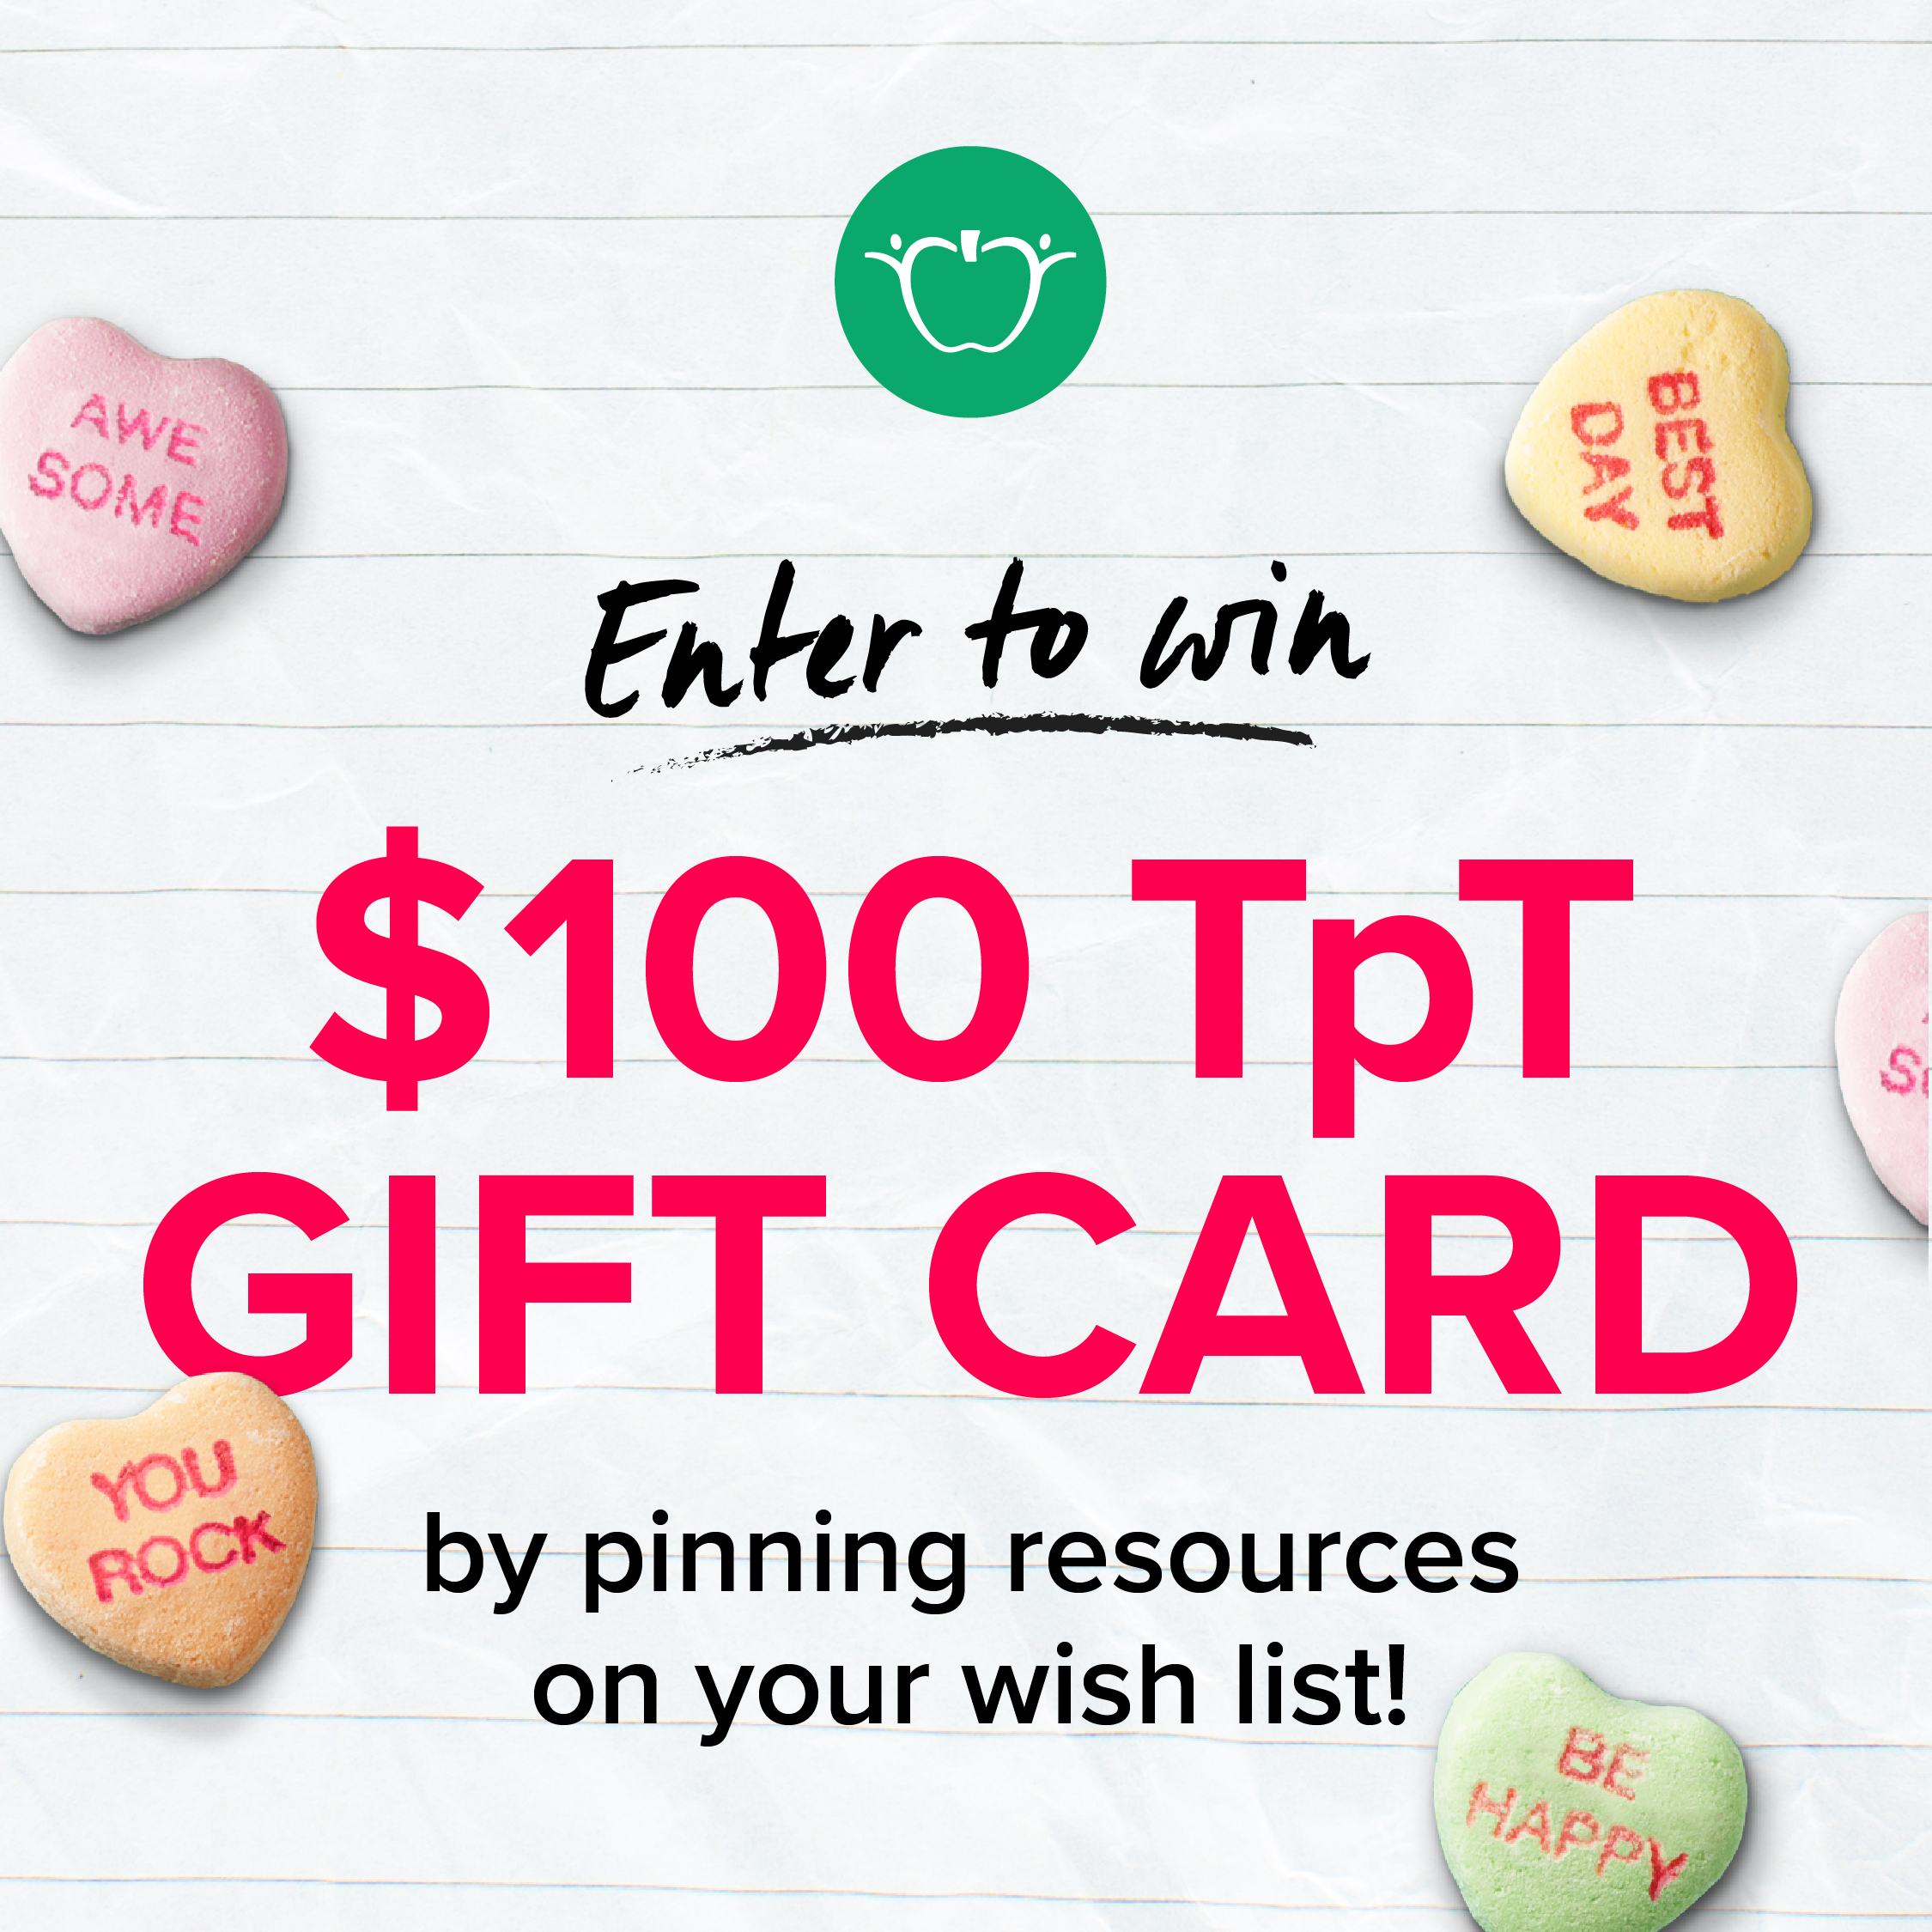 Pin for the Chance to Win!